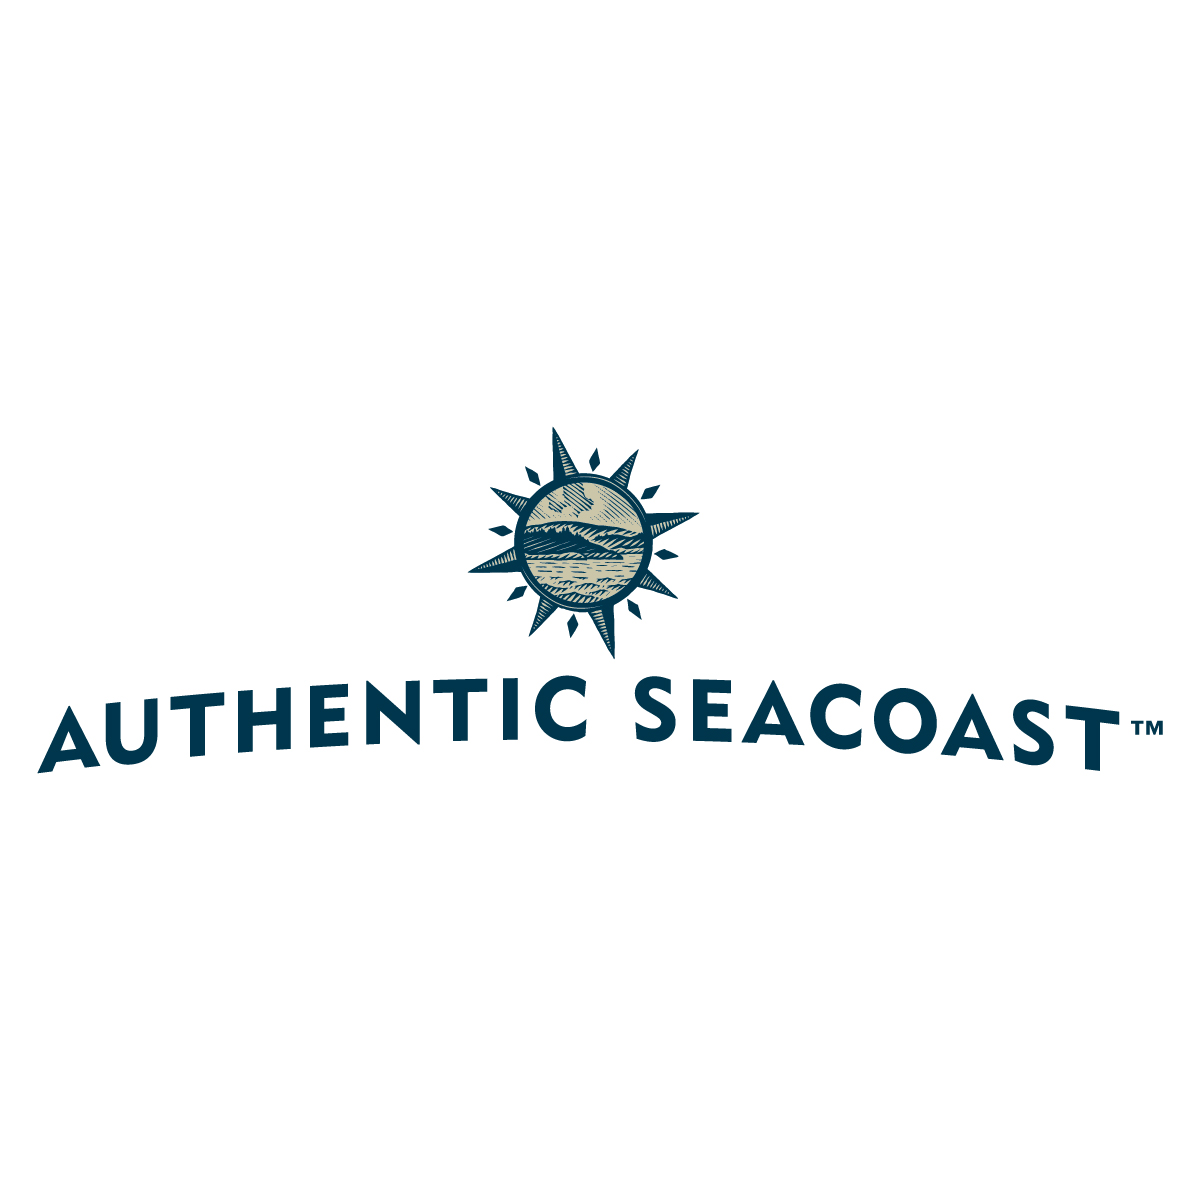 Authentic Seacoast Company